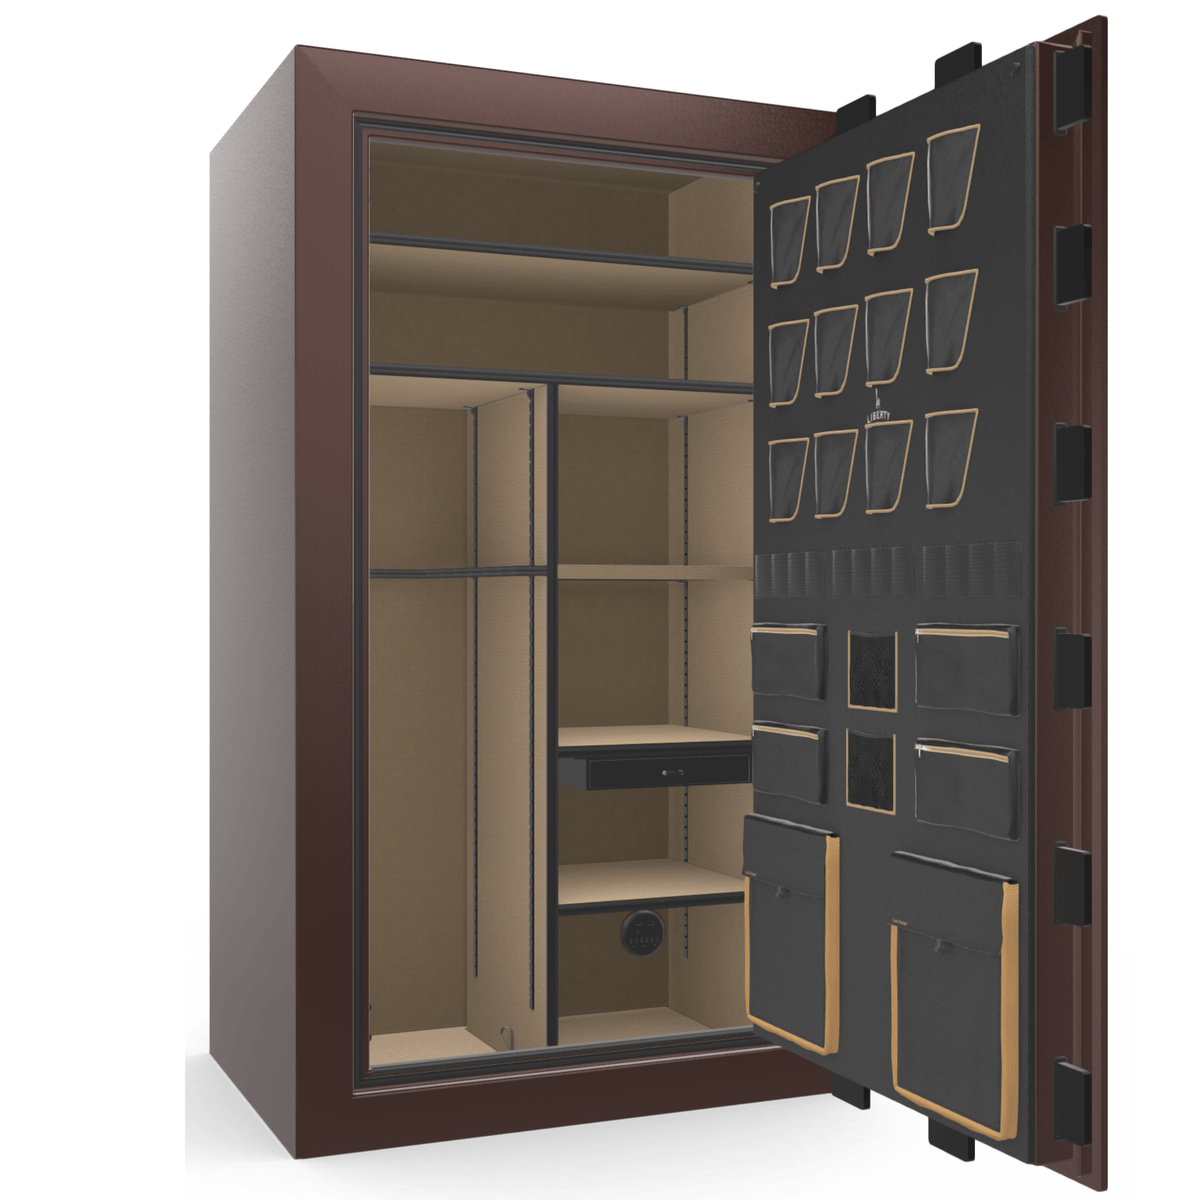 "Classic Plus | 50 | Level 7 Security | 110 Minute Fire Protection | Burgundy Gloss | Brass Mechanical Lock | 72.5""(H) x 42""(W) x 32""(D)"